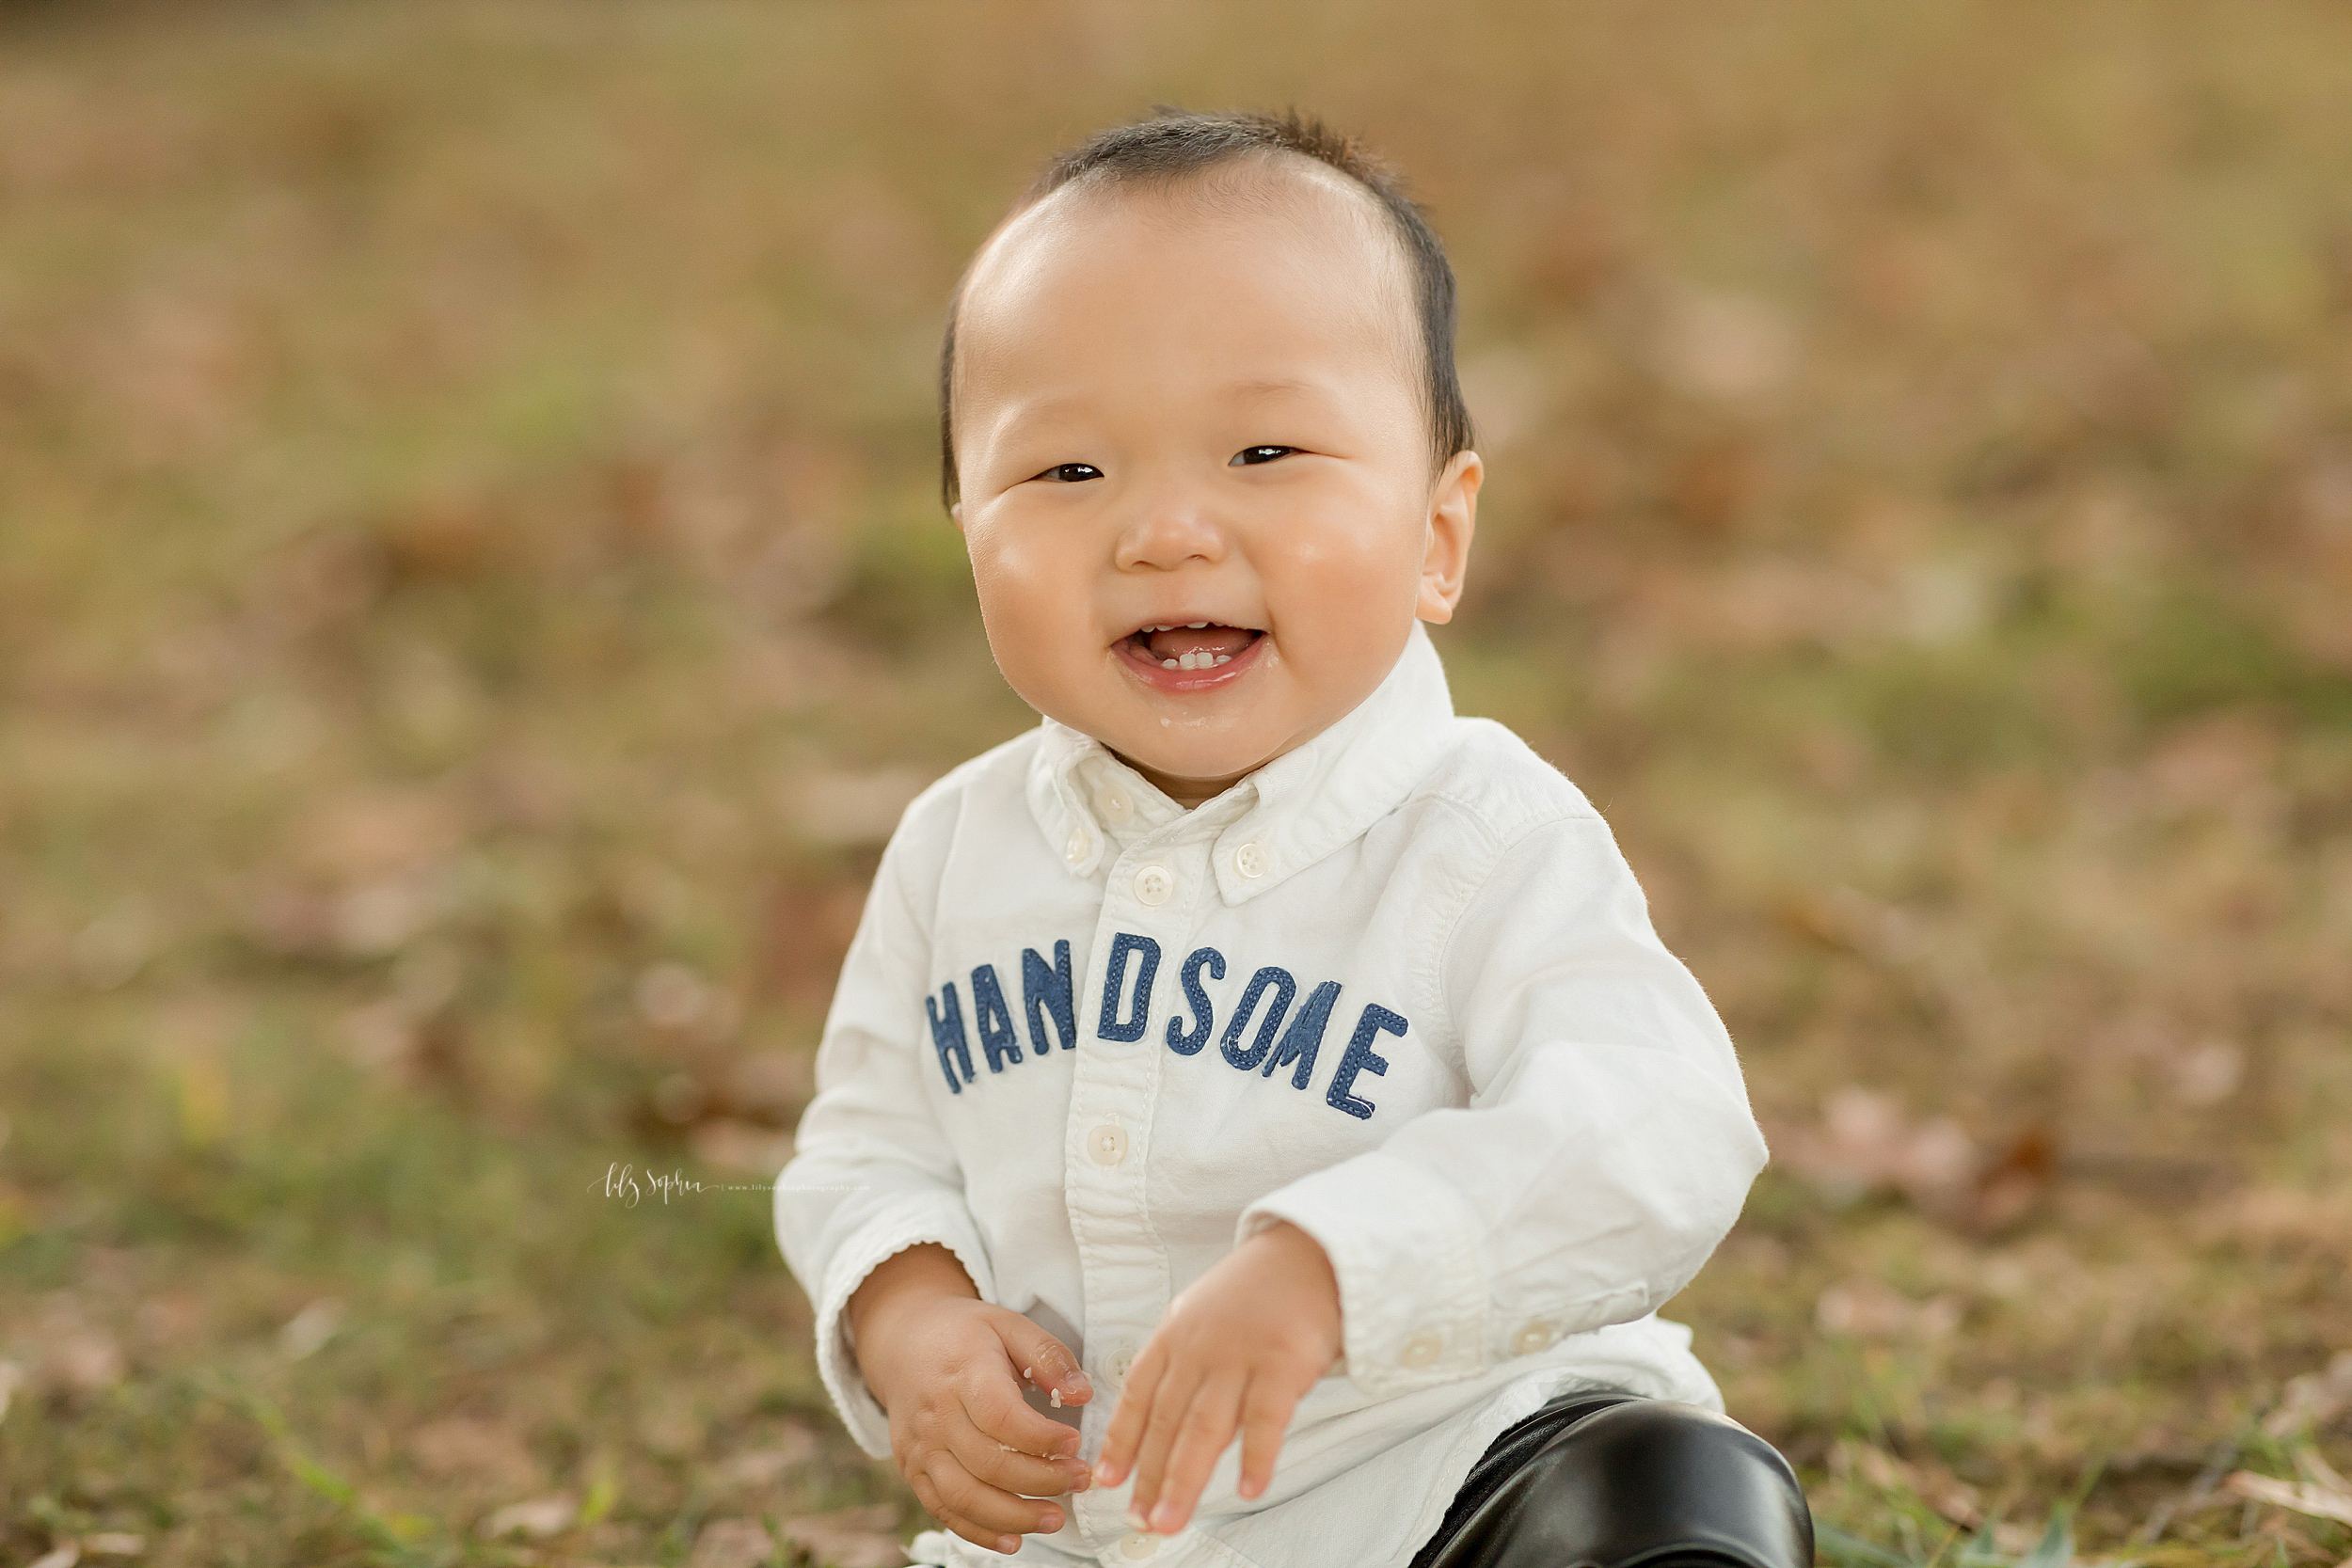 atlanta-buckhead-brookhaven-decatur-lily-sophia-photography--photographer-portraits-grant-park-intown-park-sunset-first-birthday-cake-smash-one-year-old-outdoors-cool-asian-american-family_0095.jpg